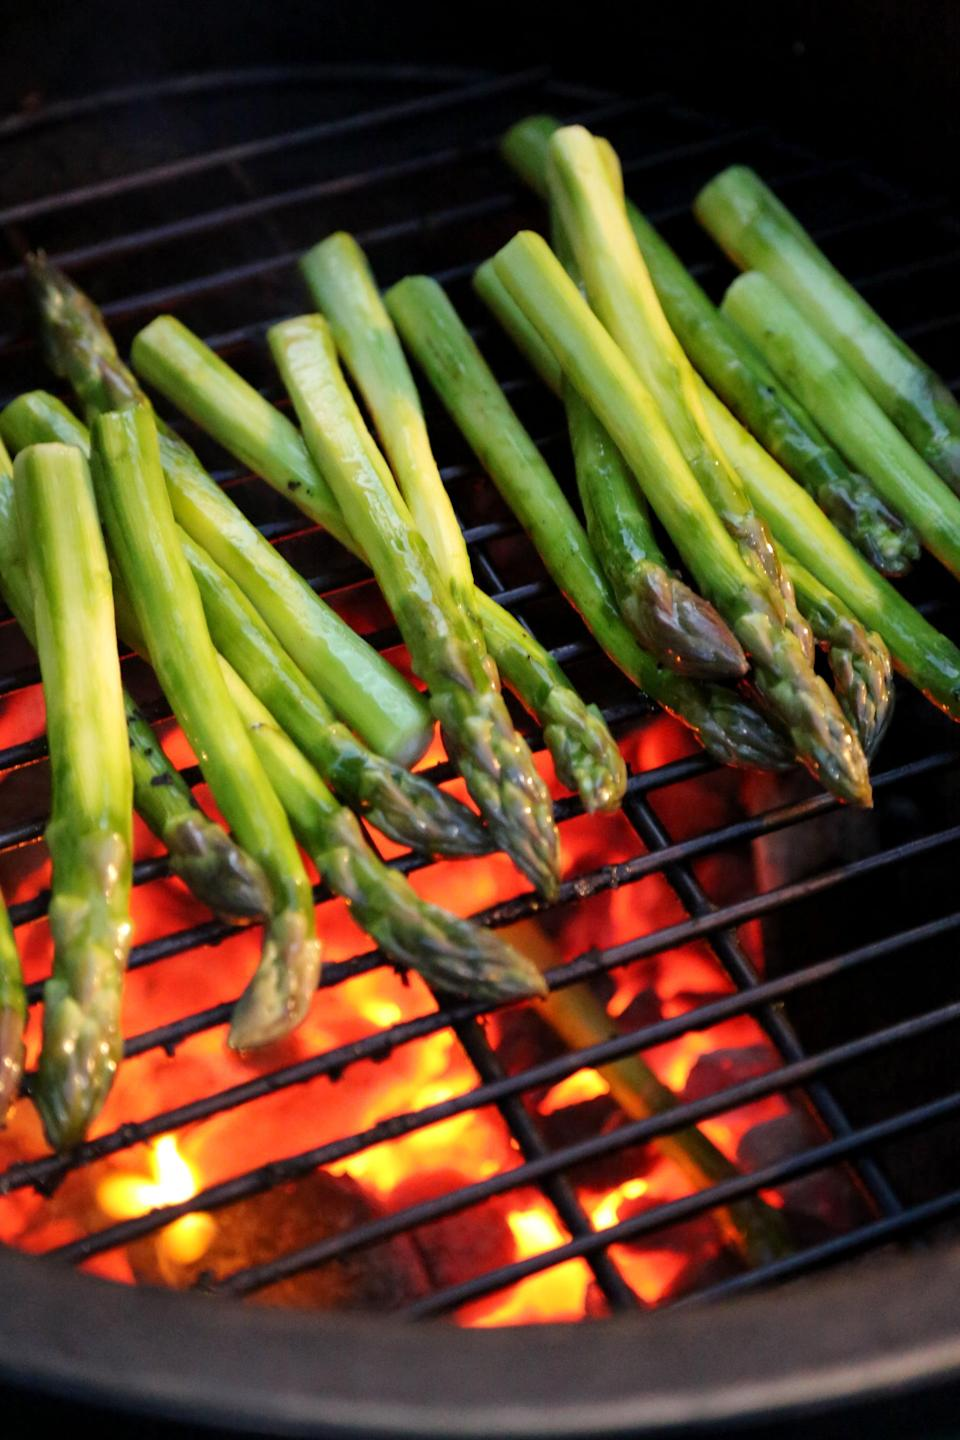 "<p>Asparagus is another low-carb side that's perfect for grilling season. Just buy thicker stalks, so they're less likely to slip between the grates.</p> <p><strong>Get the recipe:</strong> <a href=""http://www.popsugar.com/food/How-Grill-Asparagus-41379379/"" class=""link rapid-noclick-resp"" rel=""nofollow noopener"" target=""_blank"" data-ylk=""slk:grilled asparagus"">grilled asparagus</a></p>"